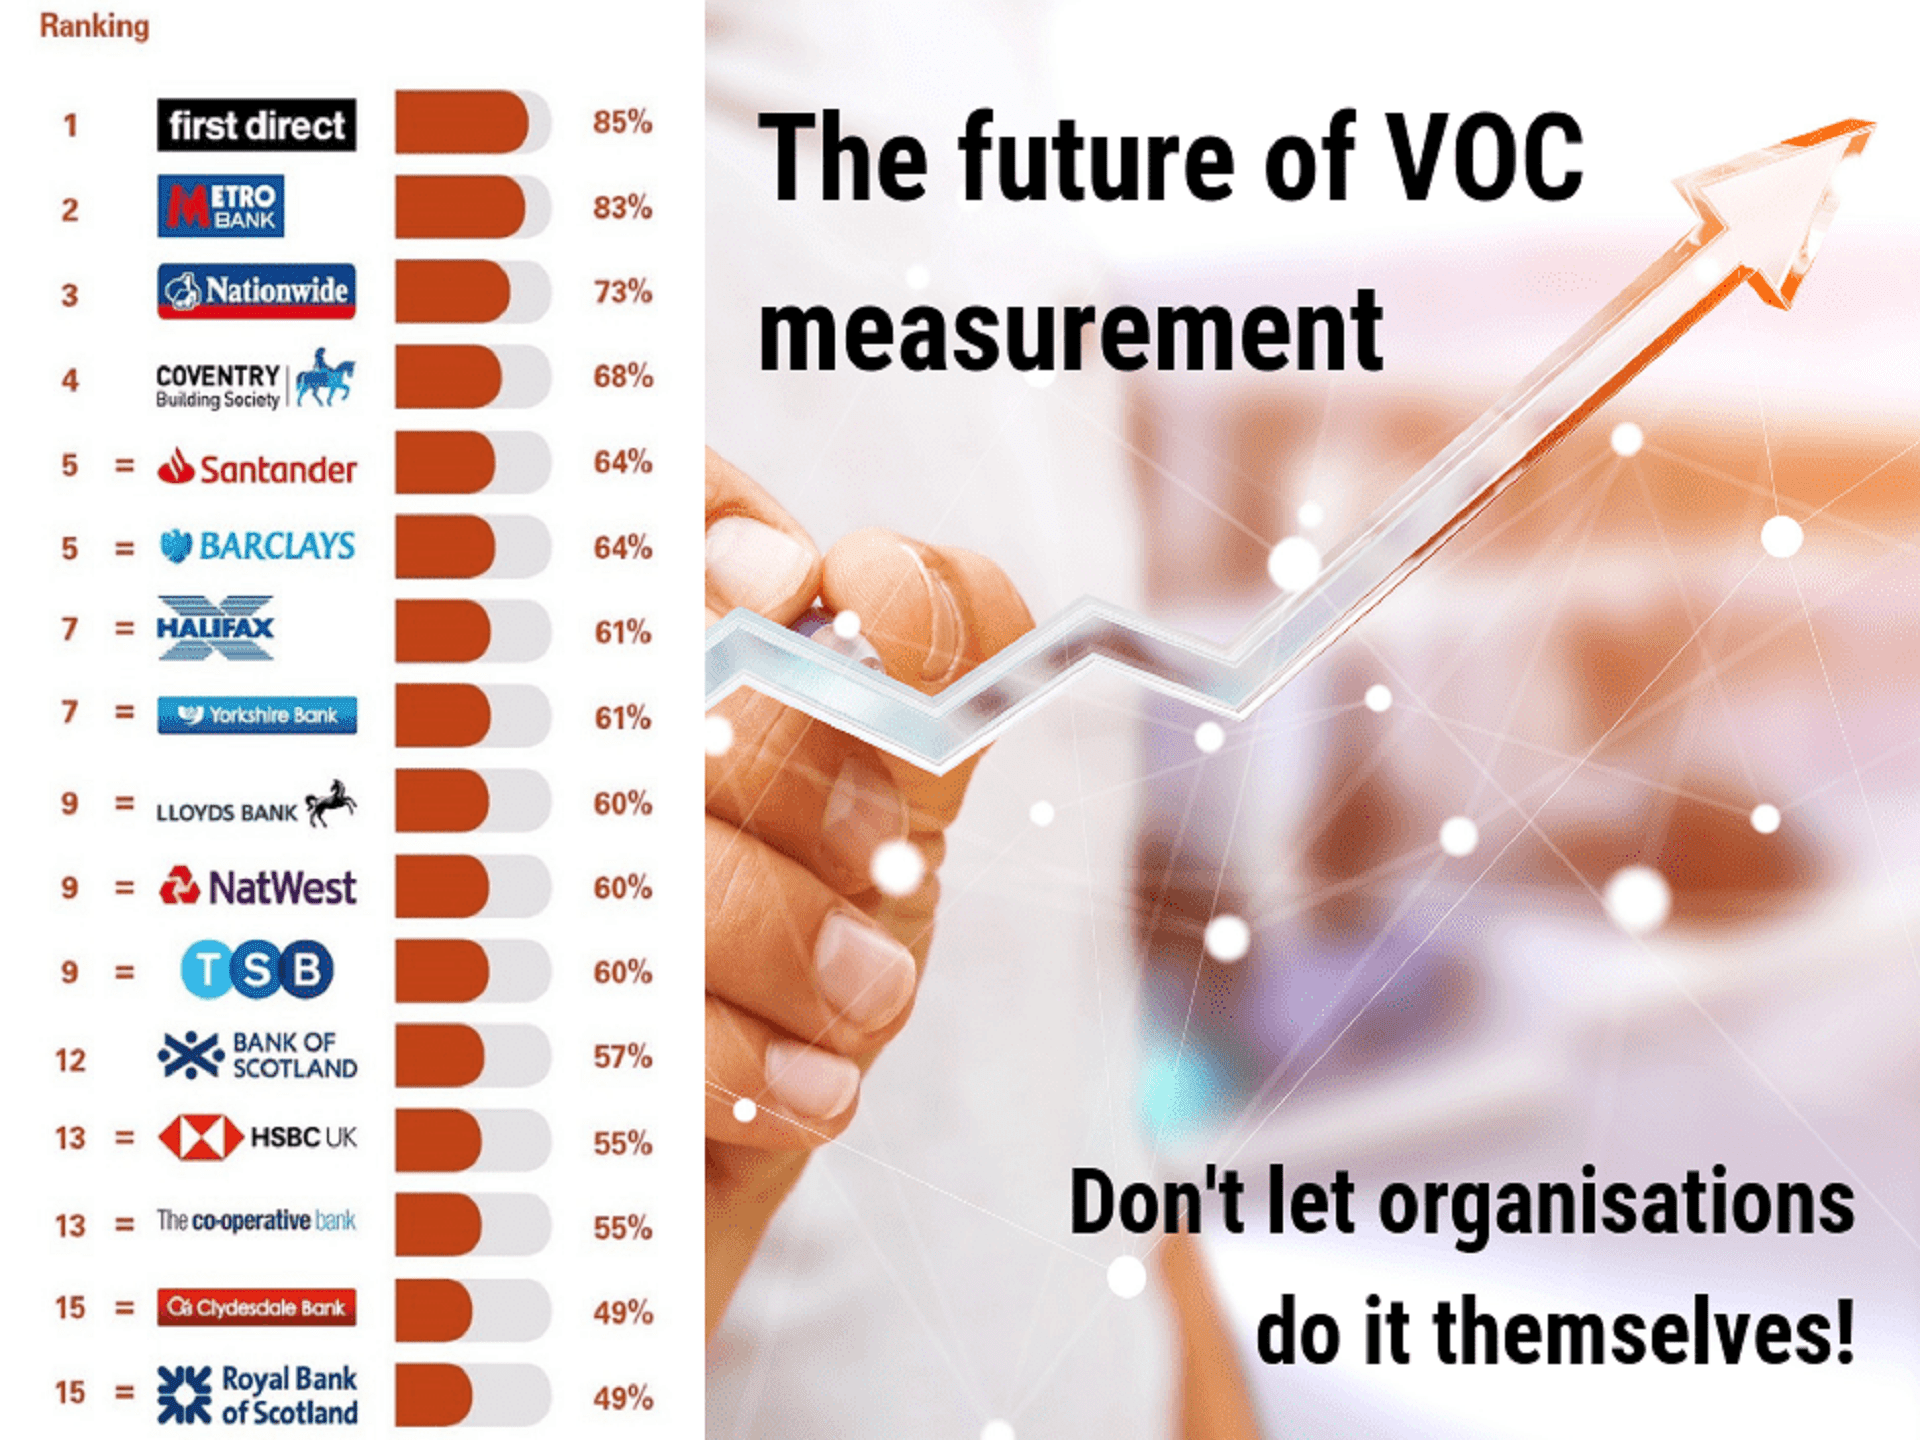 The future of VOC measurement: Don't let organisations do it themselves!